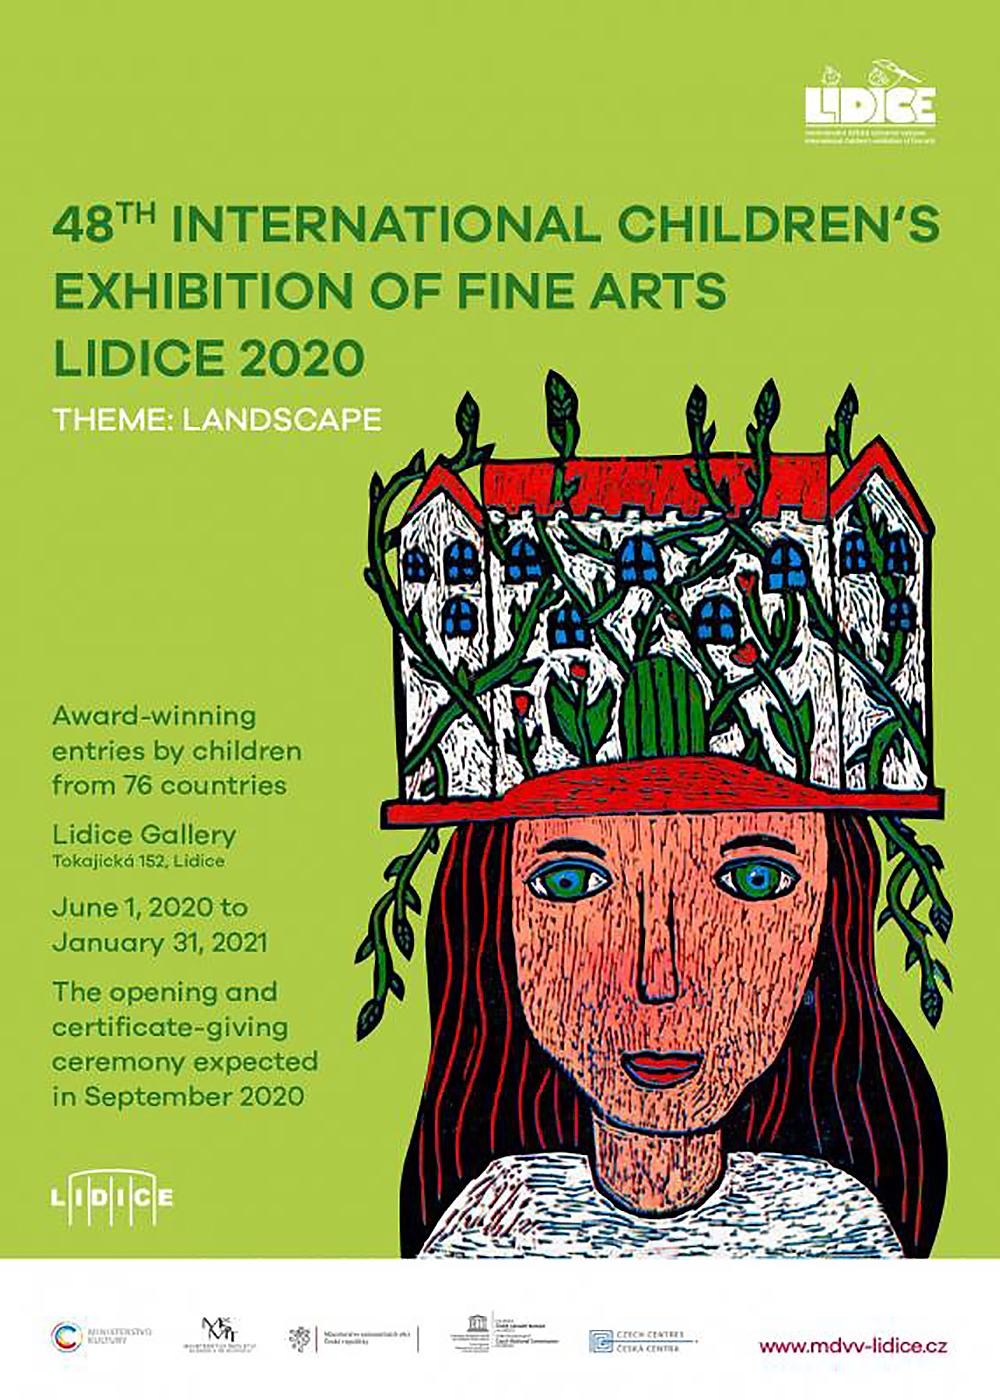 poster for the 48th International Children's Exhibition of Fine Arts Lidice 2020, an art ontest for children ages 4 to 16 around the world, headquartered in Lidice, Czech Republic